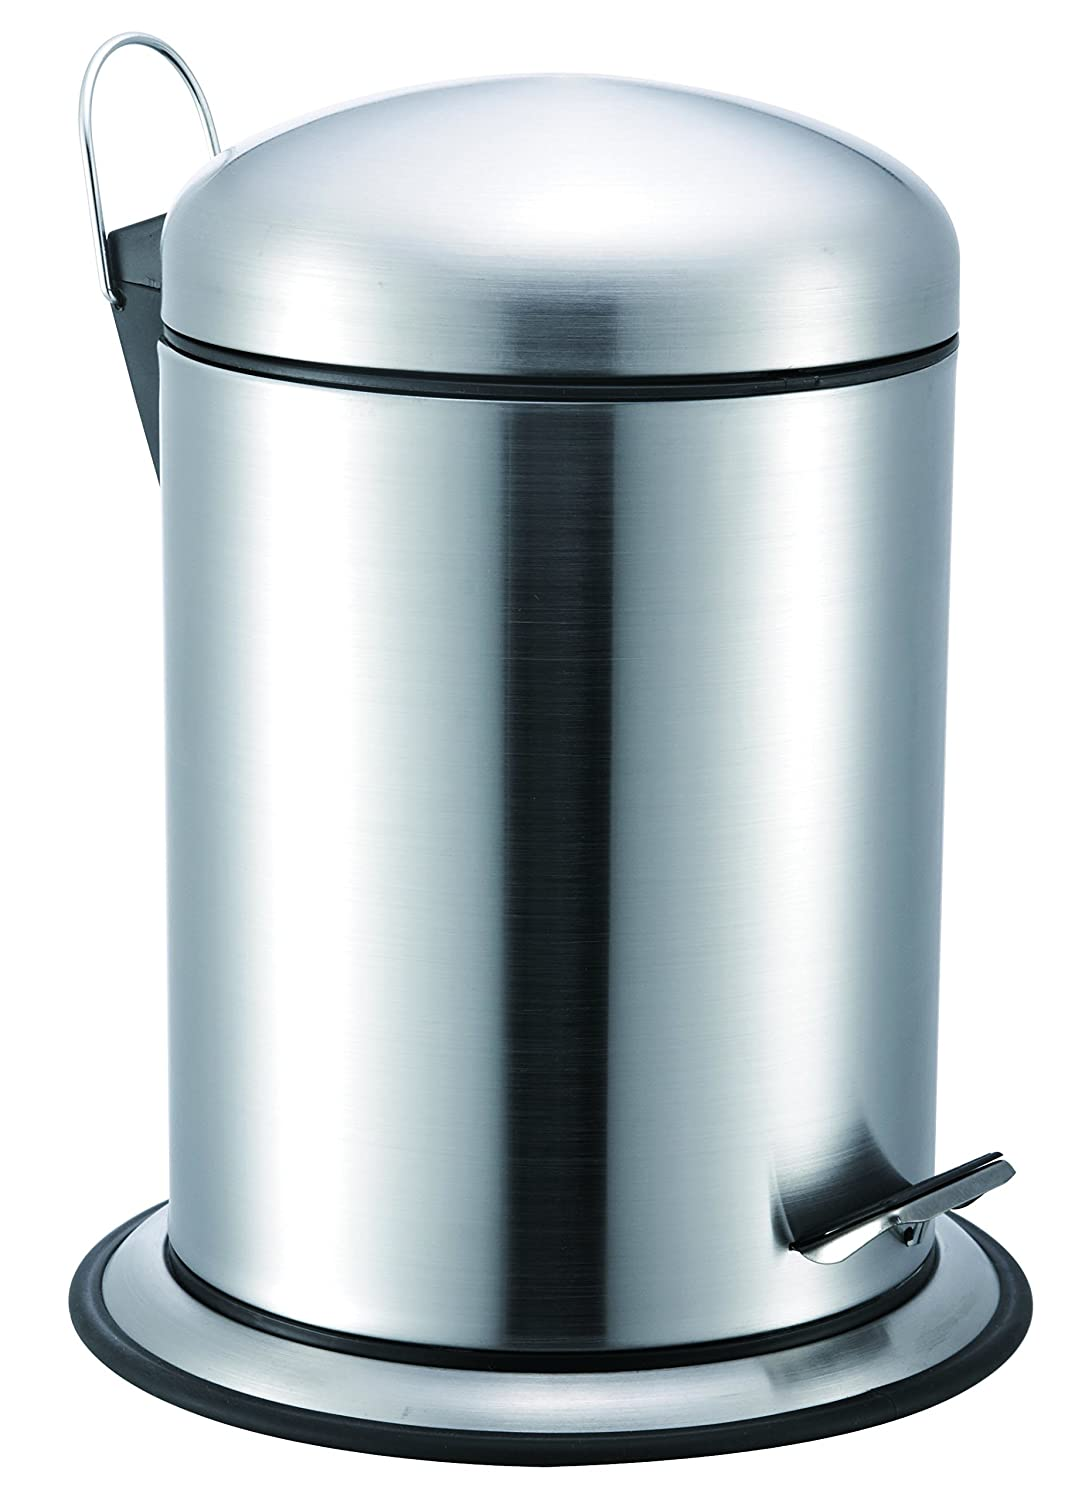 Amazon.com: Stainless Steel Pedal Trash Can/Bin: Dome Lid, Round ...